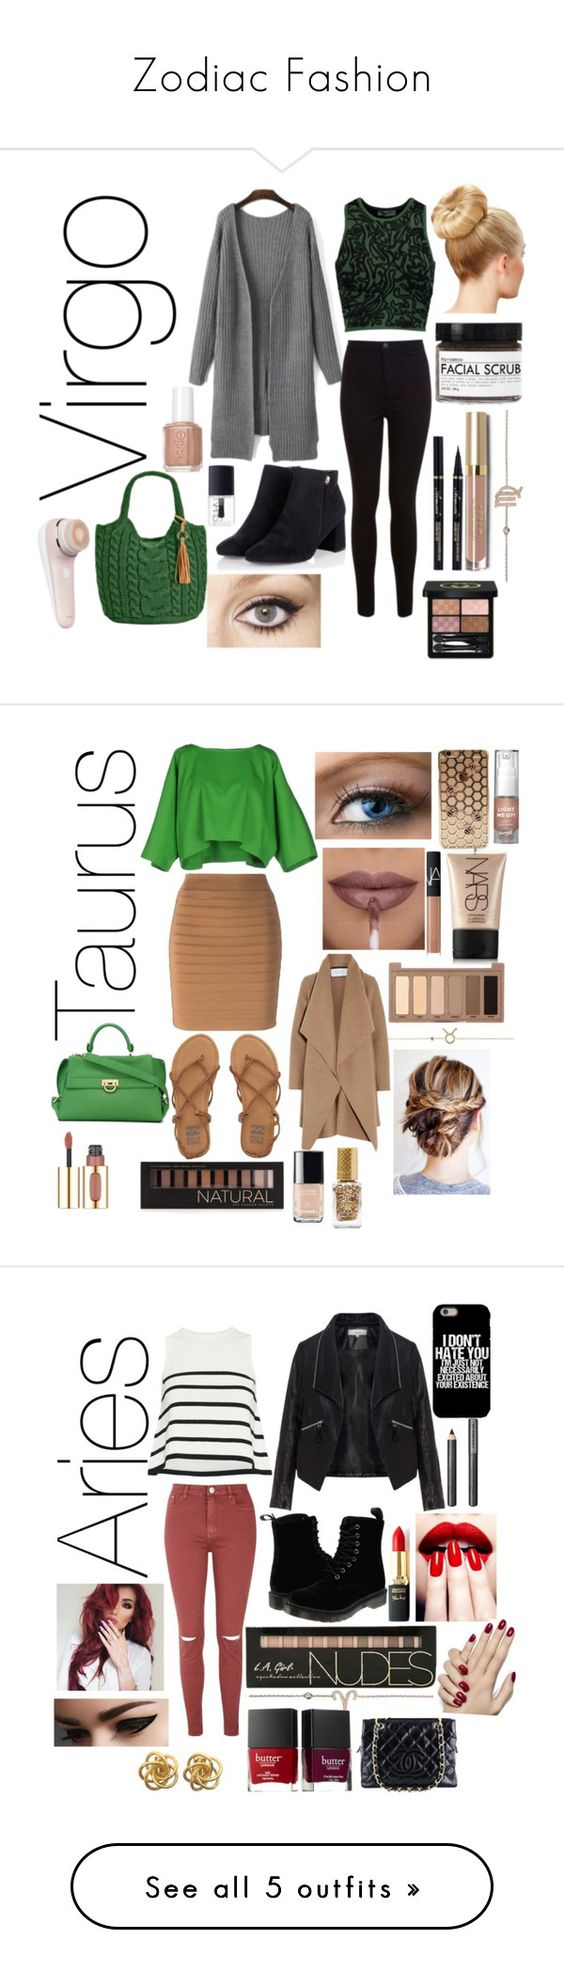 """""""Zodiac Fashion"""" by nycgirl125 ❤ liked on Polyvore featuring Opening Ceremony, Miss Selfridge, Straw Studios, Fig+Yarrow, Charlotte Tilbury, Gucci, Essie, NARS Cosmetics, Balmain and Maison About"""